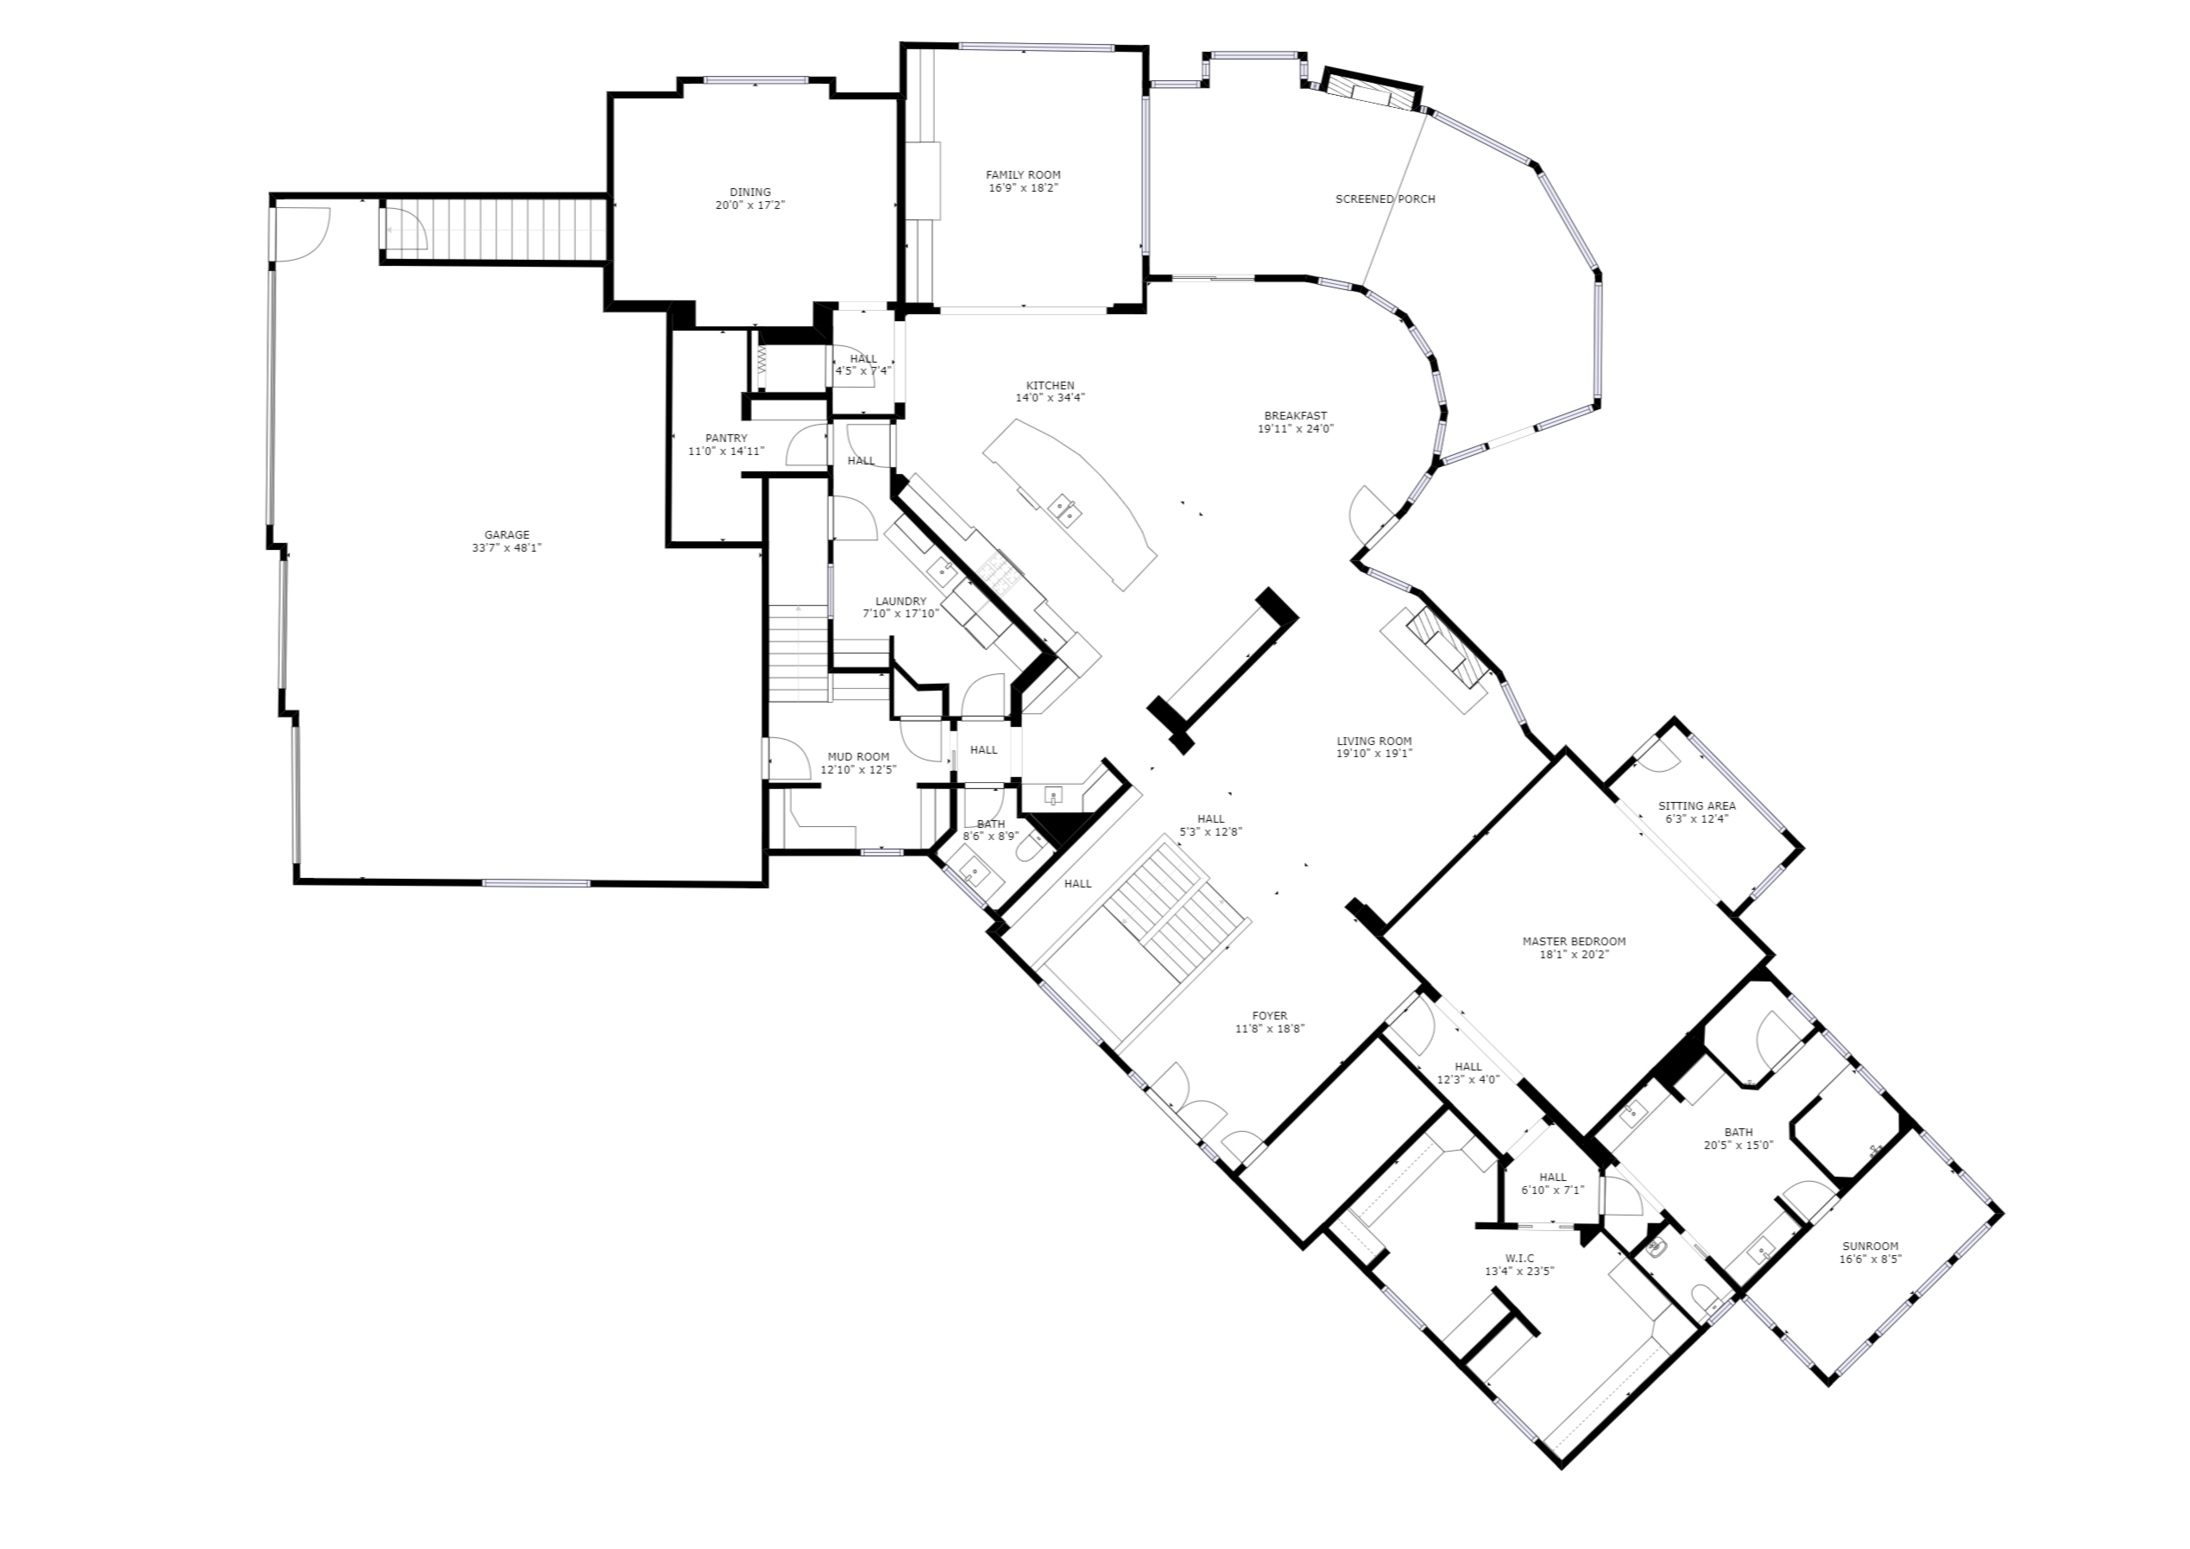 Main Floor – sizes and dimensions are approximate. Actual may vary.